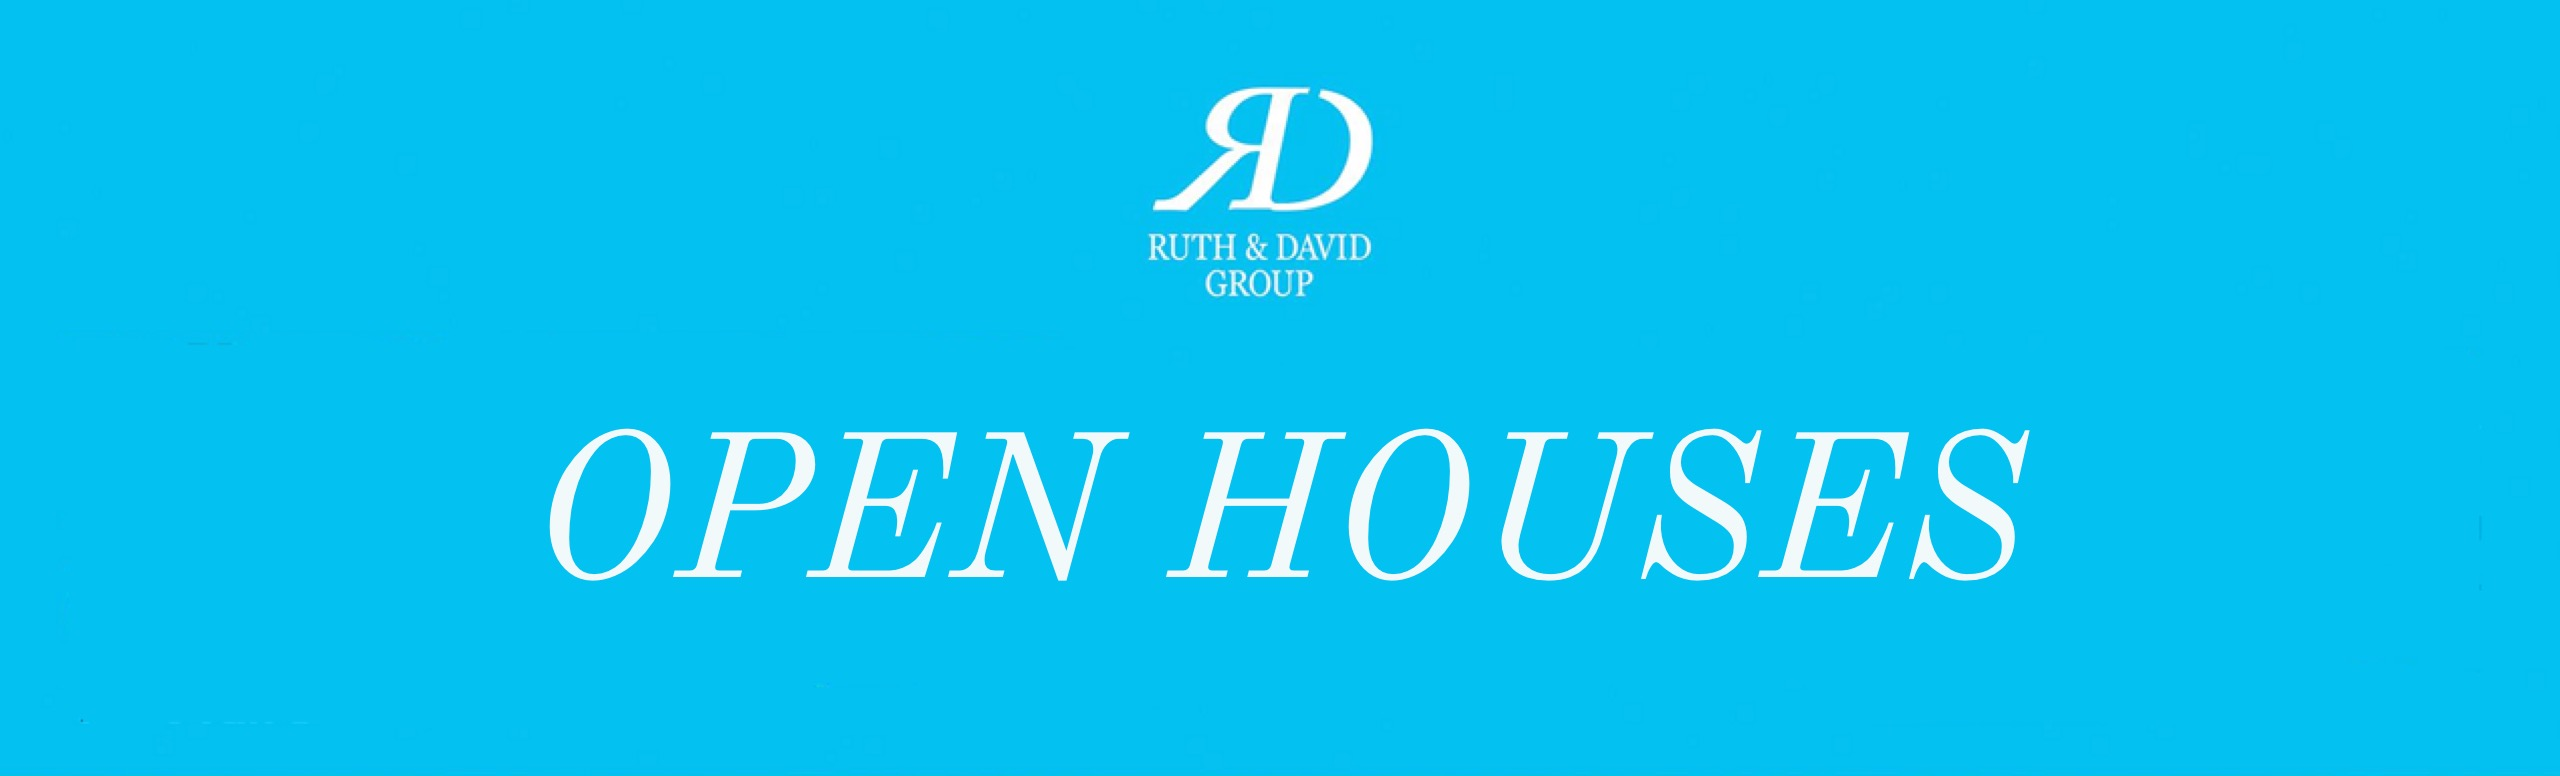 The Ruth & David Group Open Houses